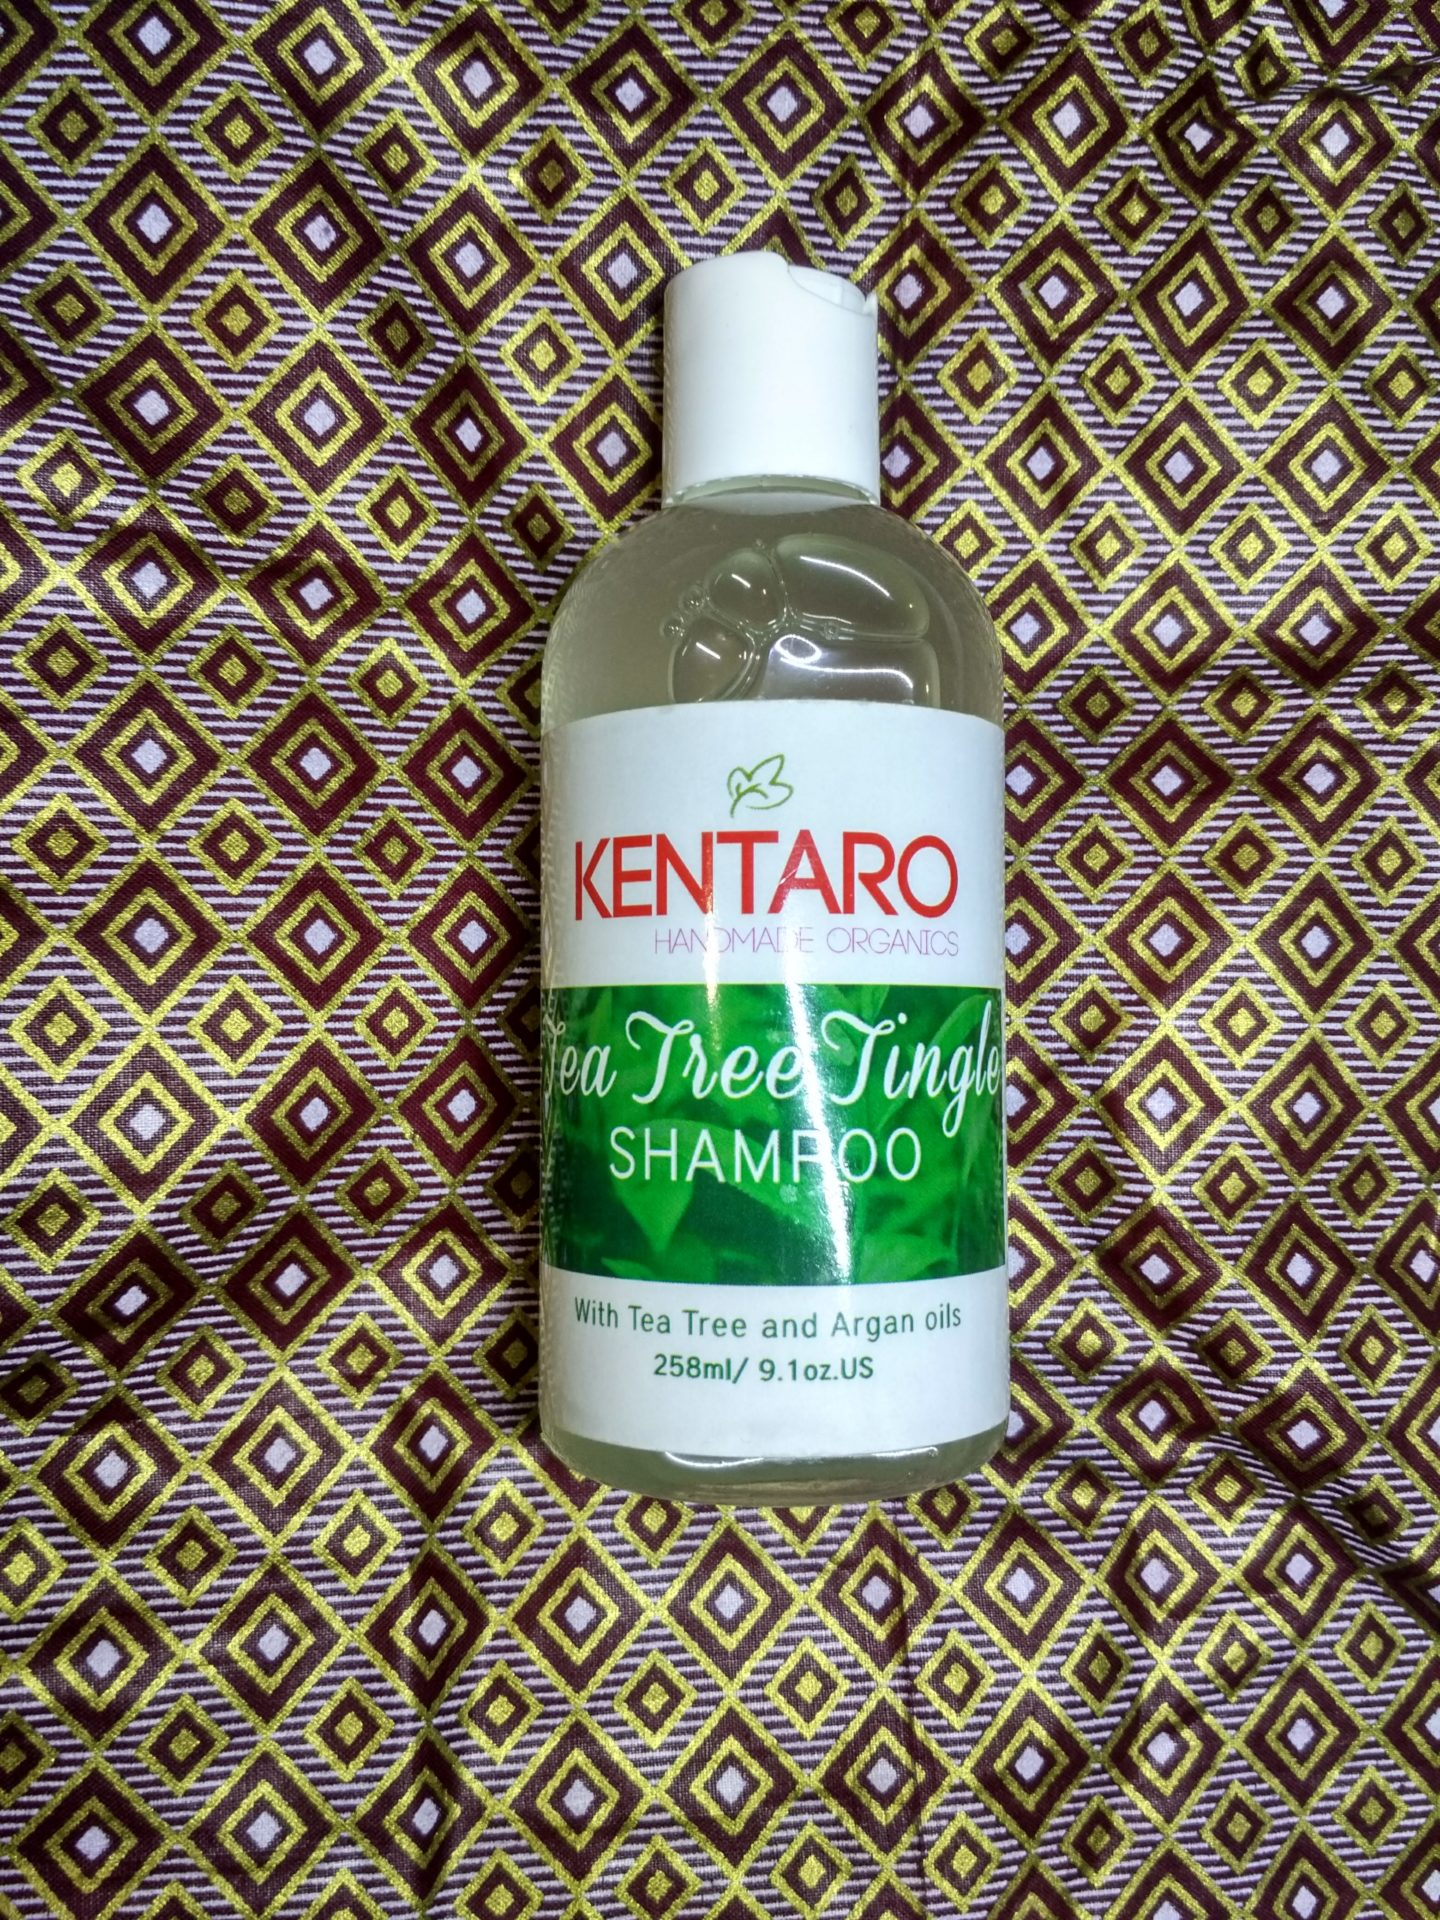 Kentaro Tea Tree Tingle Shampoo lestylists